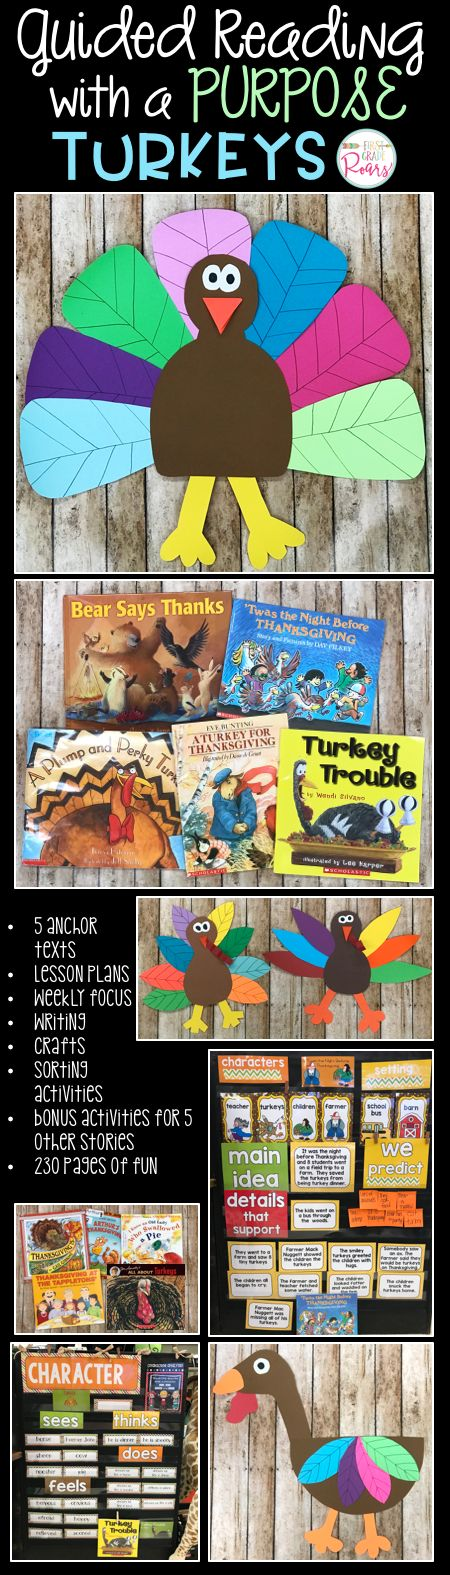 This fun turkey unit has literature and writing connections to 10 fun turkey stories. It is perfect for kindergarten, first or second grade.  There are anchor charts to go with 5 of the books, 4 different turkey crafts, and loads of activities.  Your students will be all ready for Thanksgiving after ready these gobble stories.